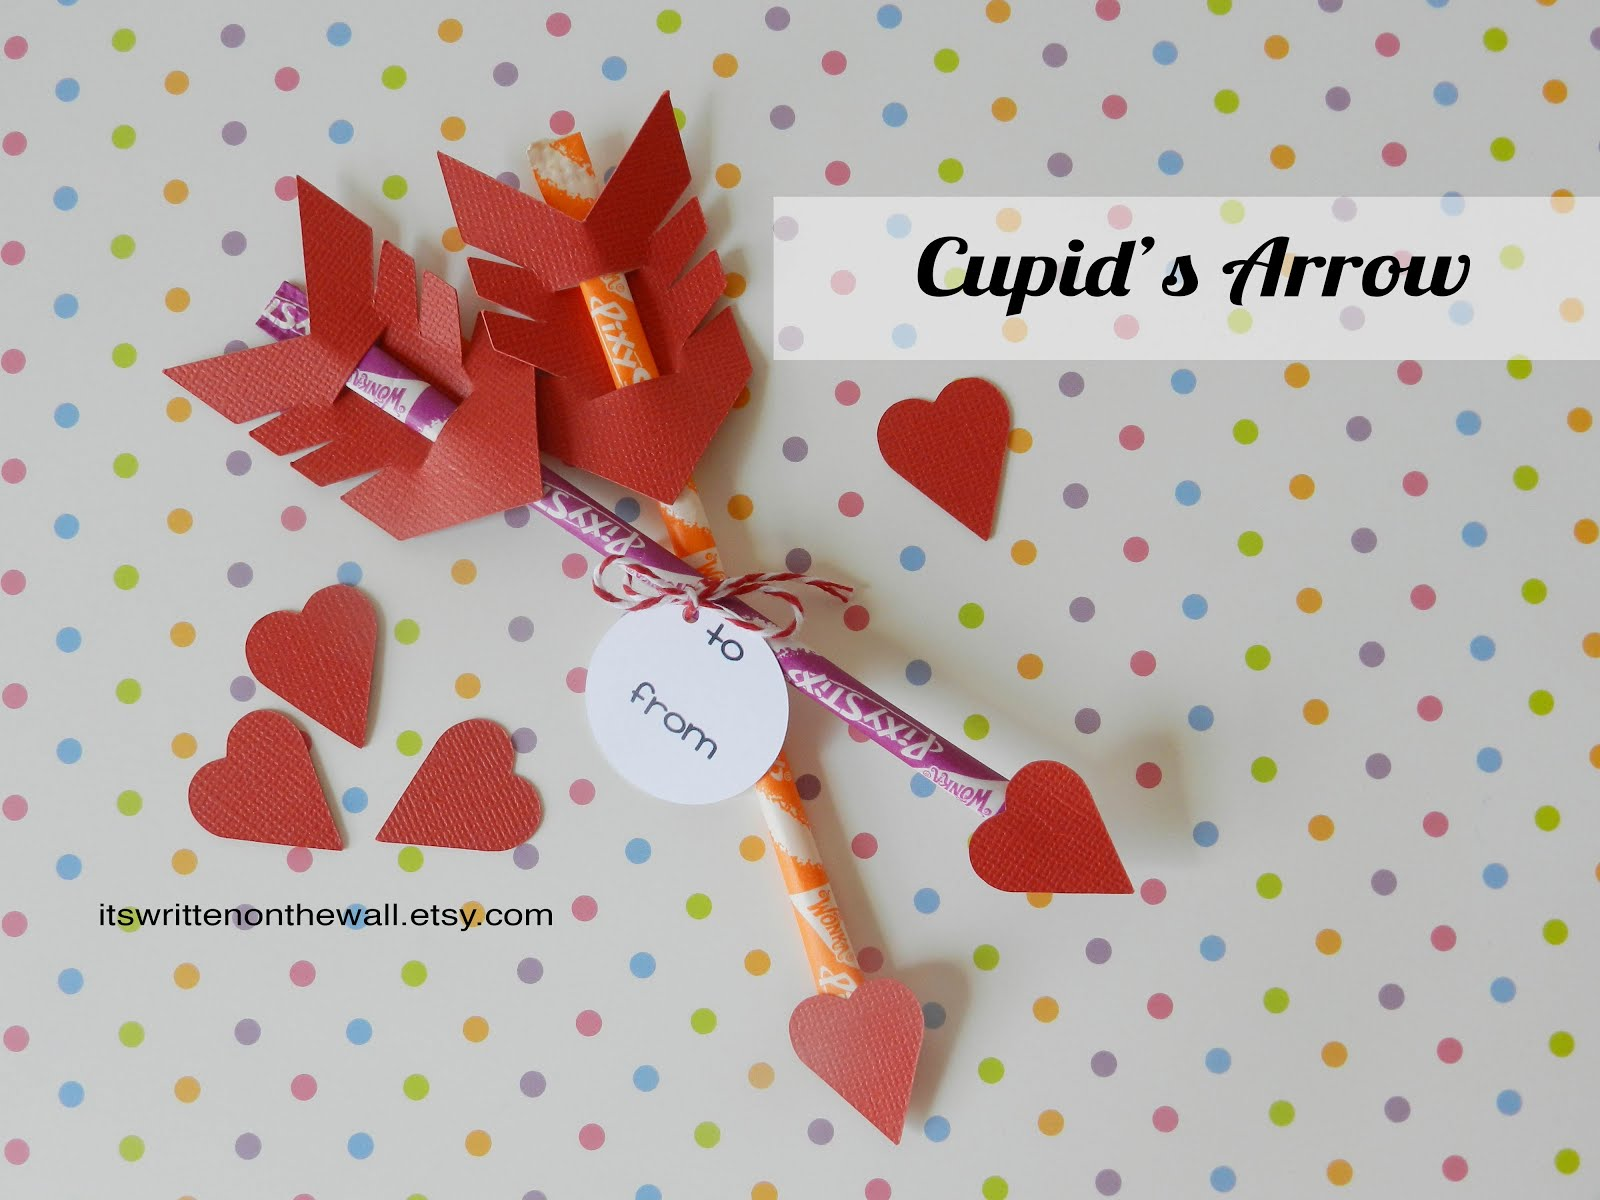 Fun Candy  Cupid's Arrow-Can be Sugar Free too